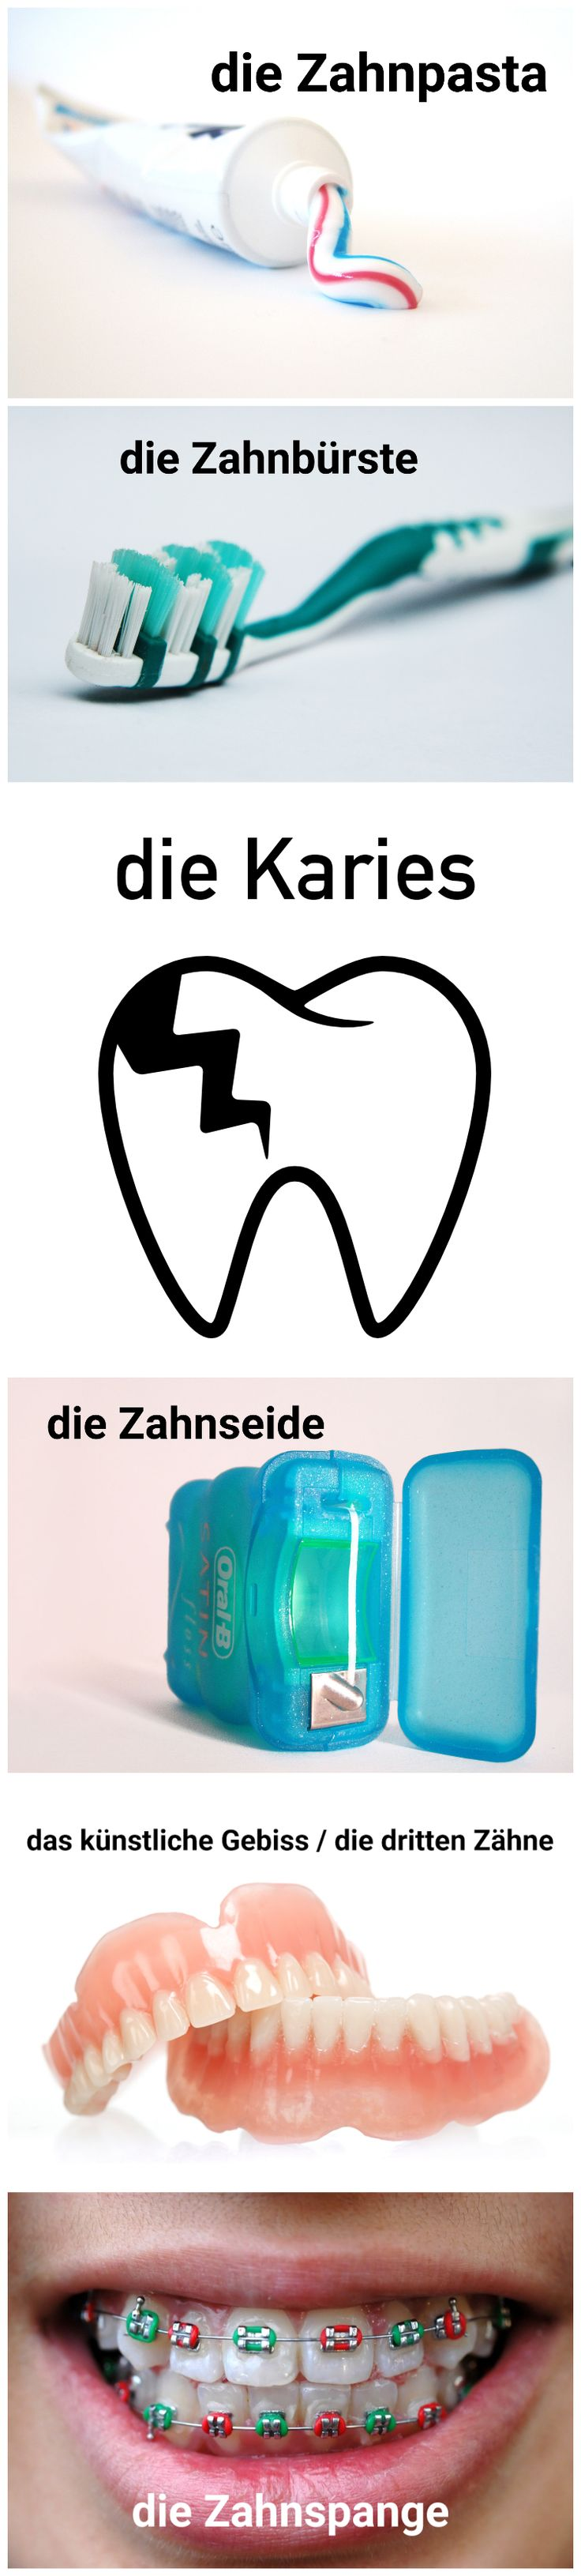 German vocabulary - Die Zähne / teeth